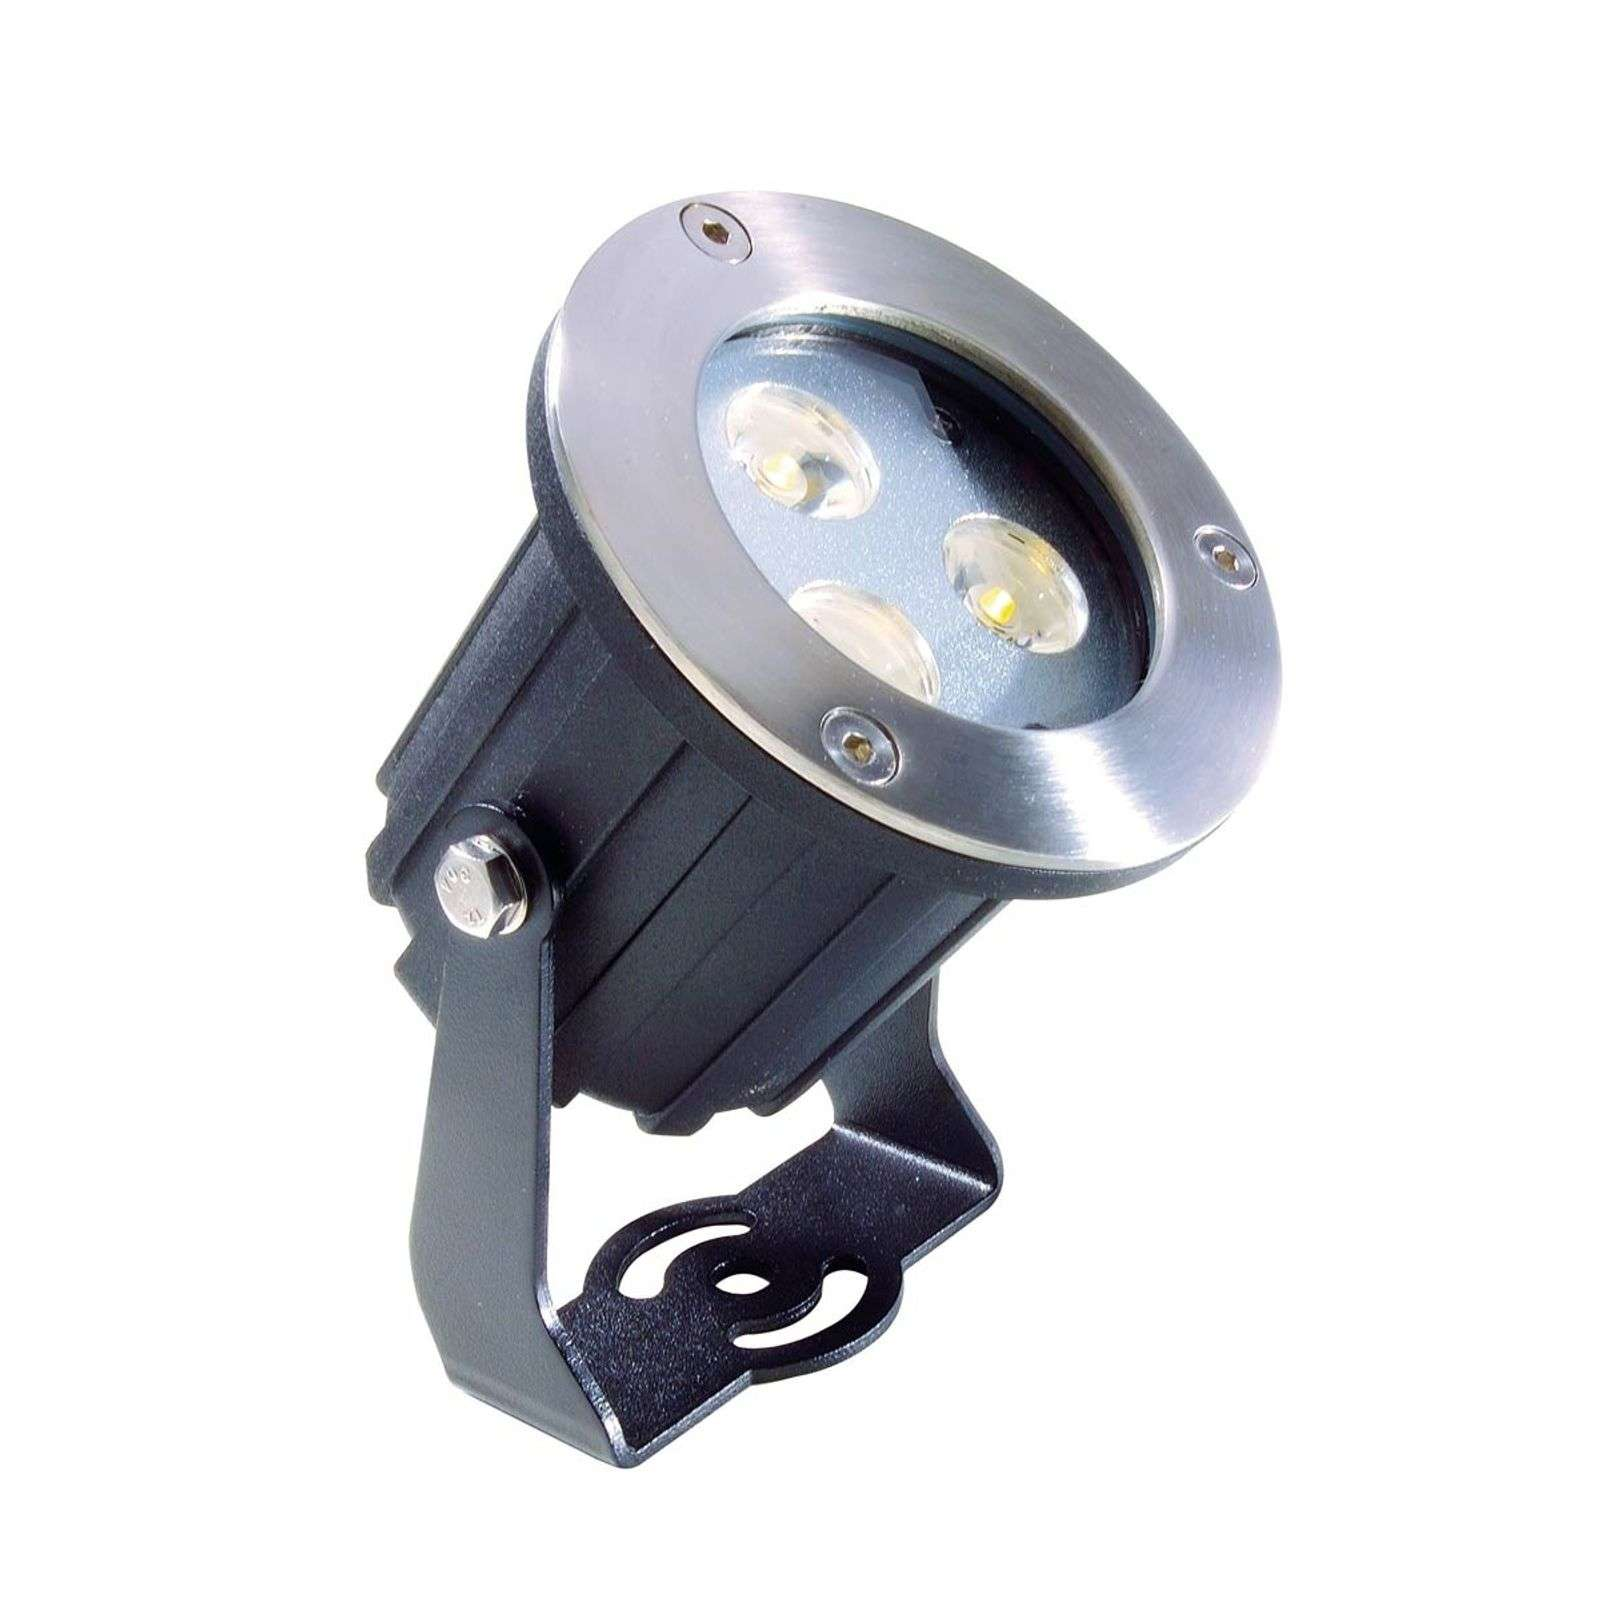 Funcional foco exterior LED Power blanco cálido